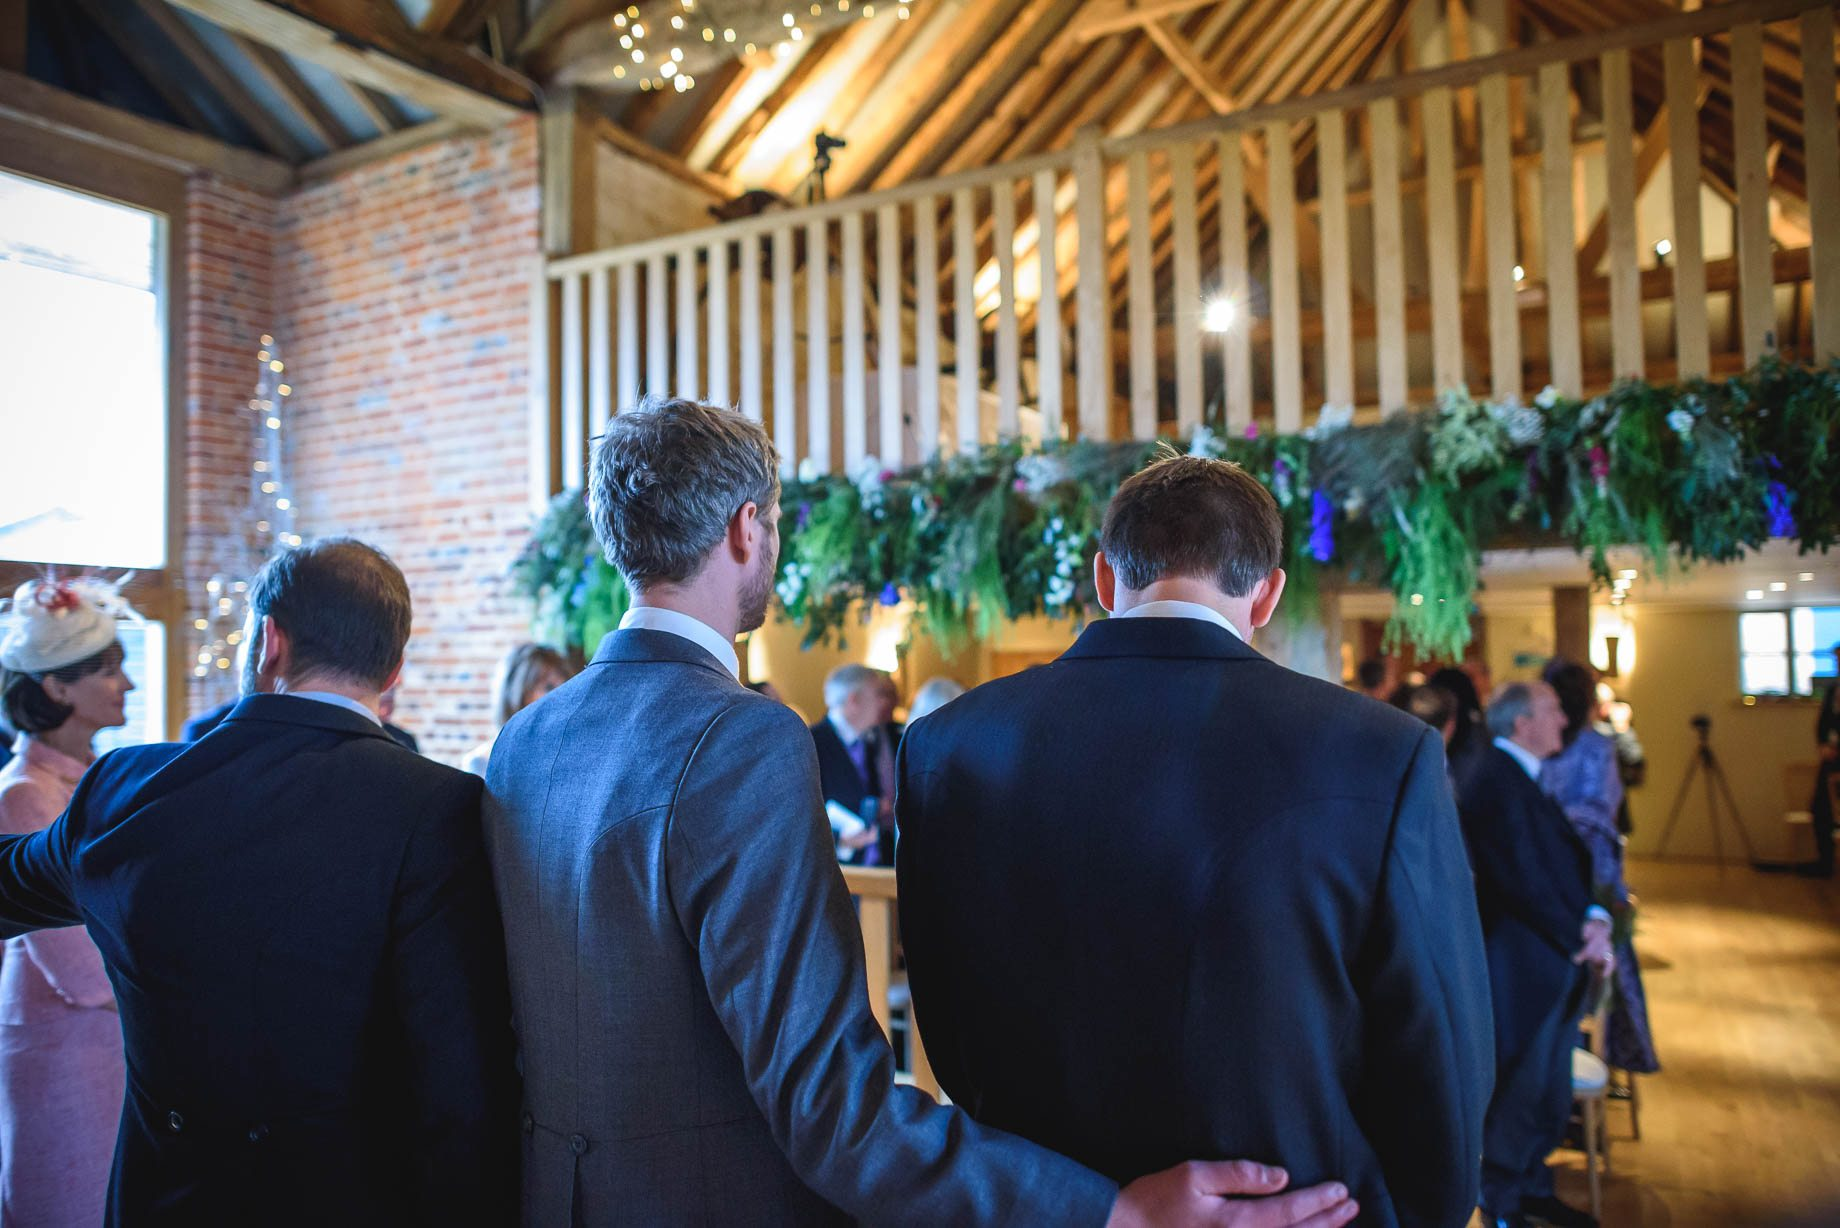 Bury Court Barn wedding photography - Ashley and Henry by Guy Collier Photography (39 of 188)